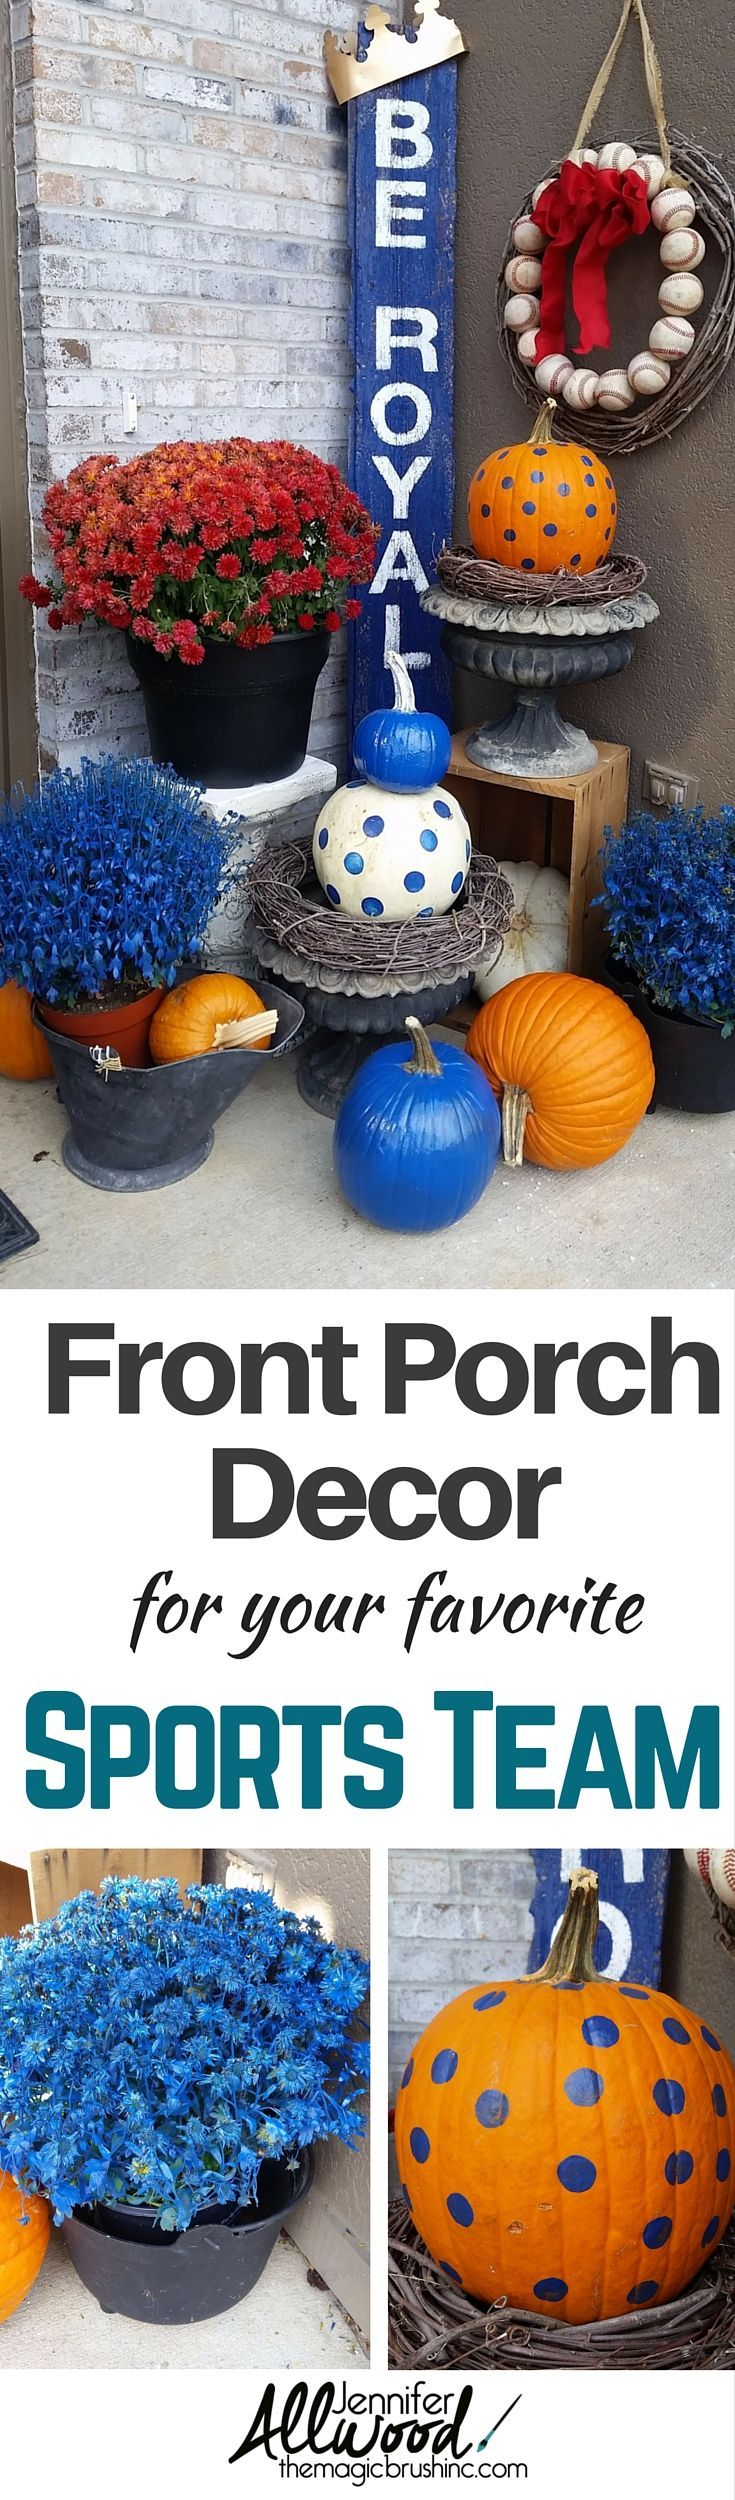 How to's : Go Royals! I'm supporting the Kansas City Royals in the World Series! Here's how to show off your SUPER FAN status with front porch decor supporting your favorite sports team. Jennifer uses painted pumpkins, stenciled barnwood and spray pained mums. theMagicBrushinc.com